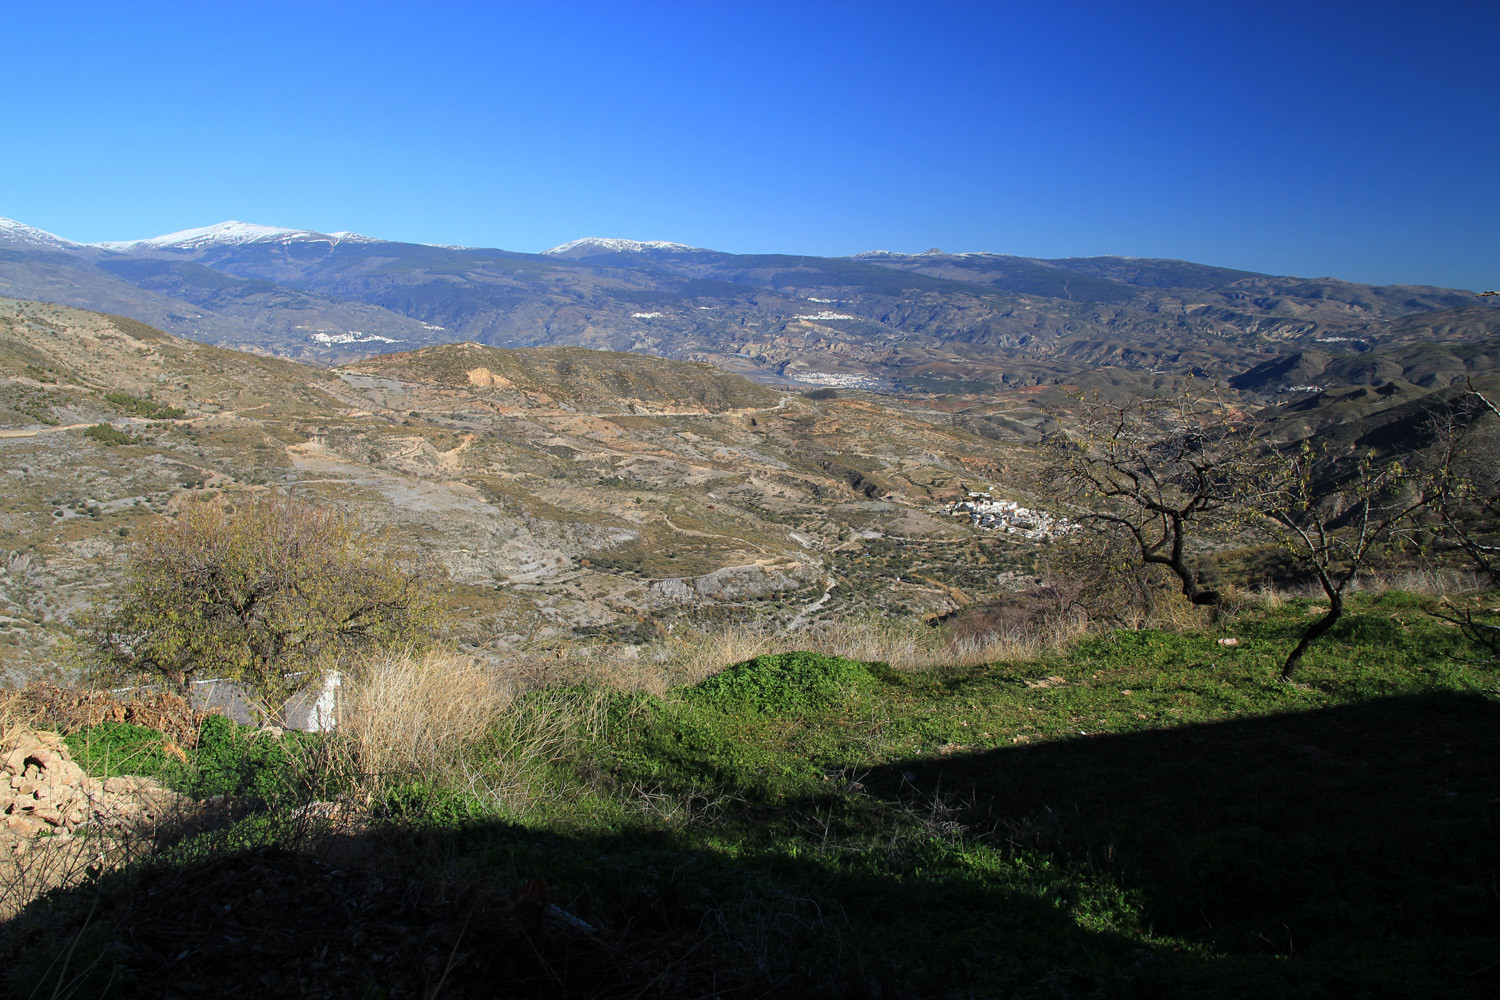 View on the Sierra Nevada from the Contraviesa